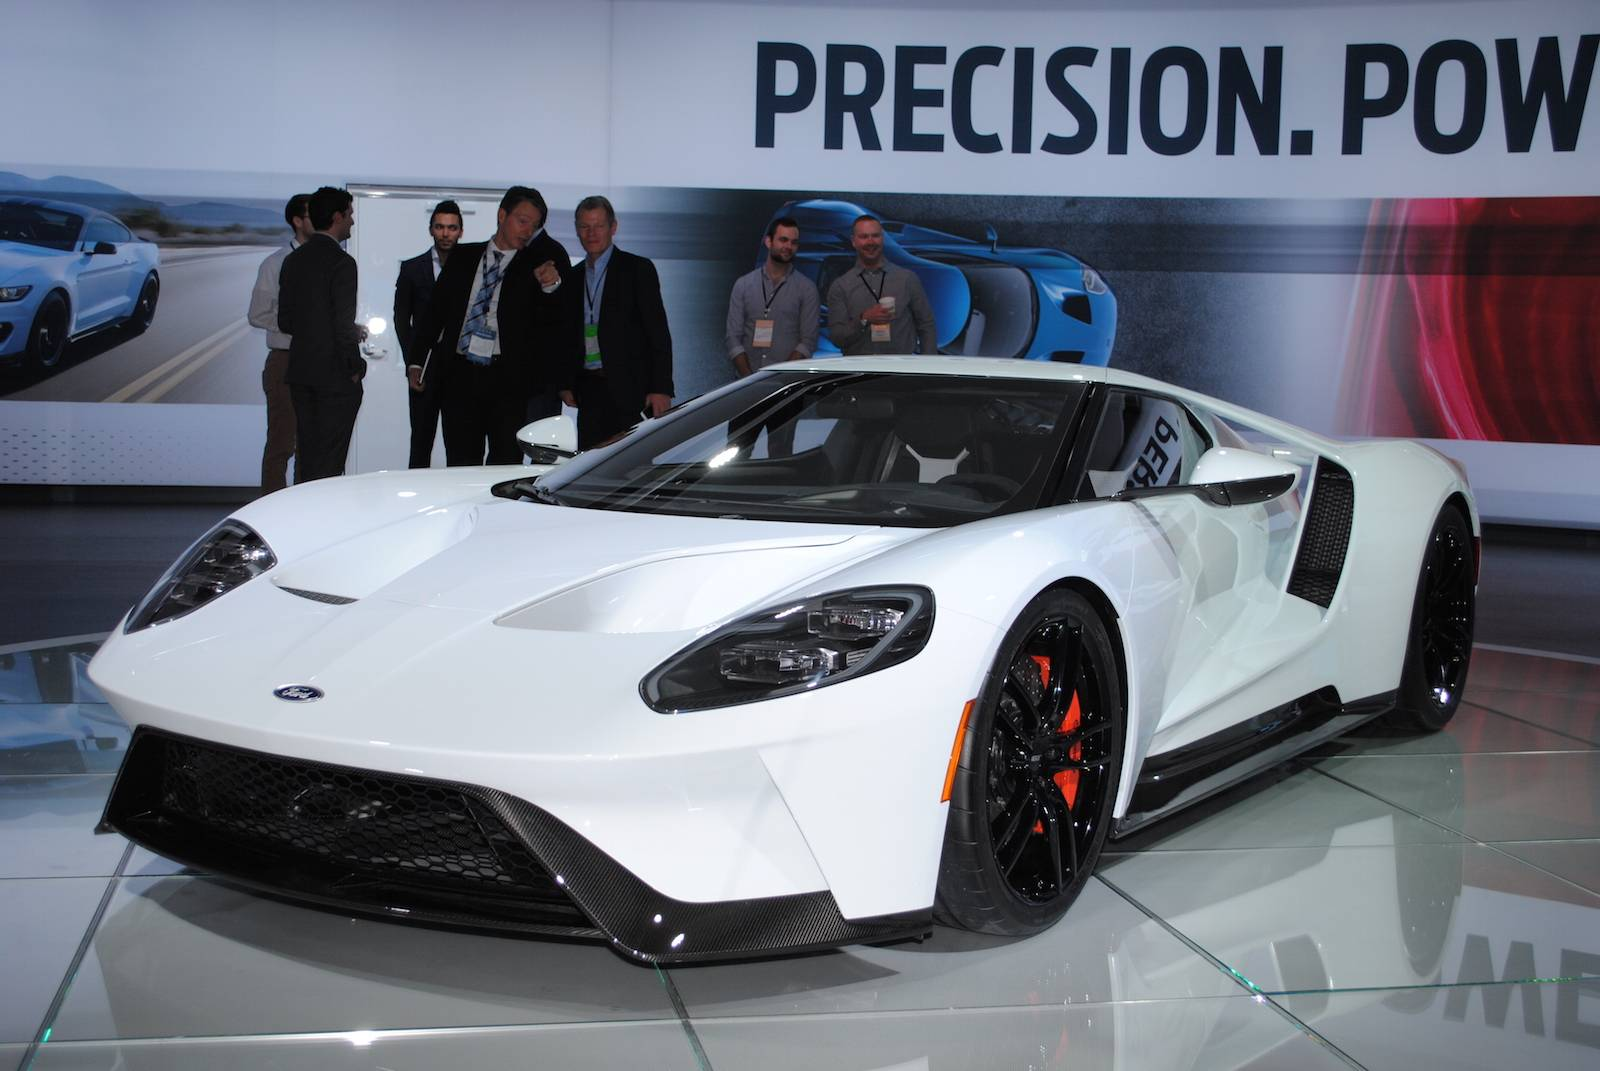 New ford gt 2017 displayed at 2016 detroit motor show for Ford gt 2017 motor